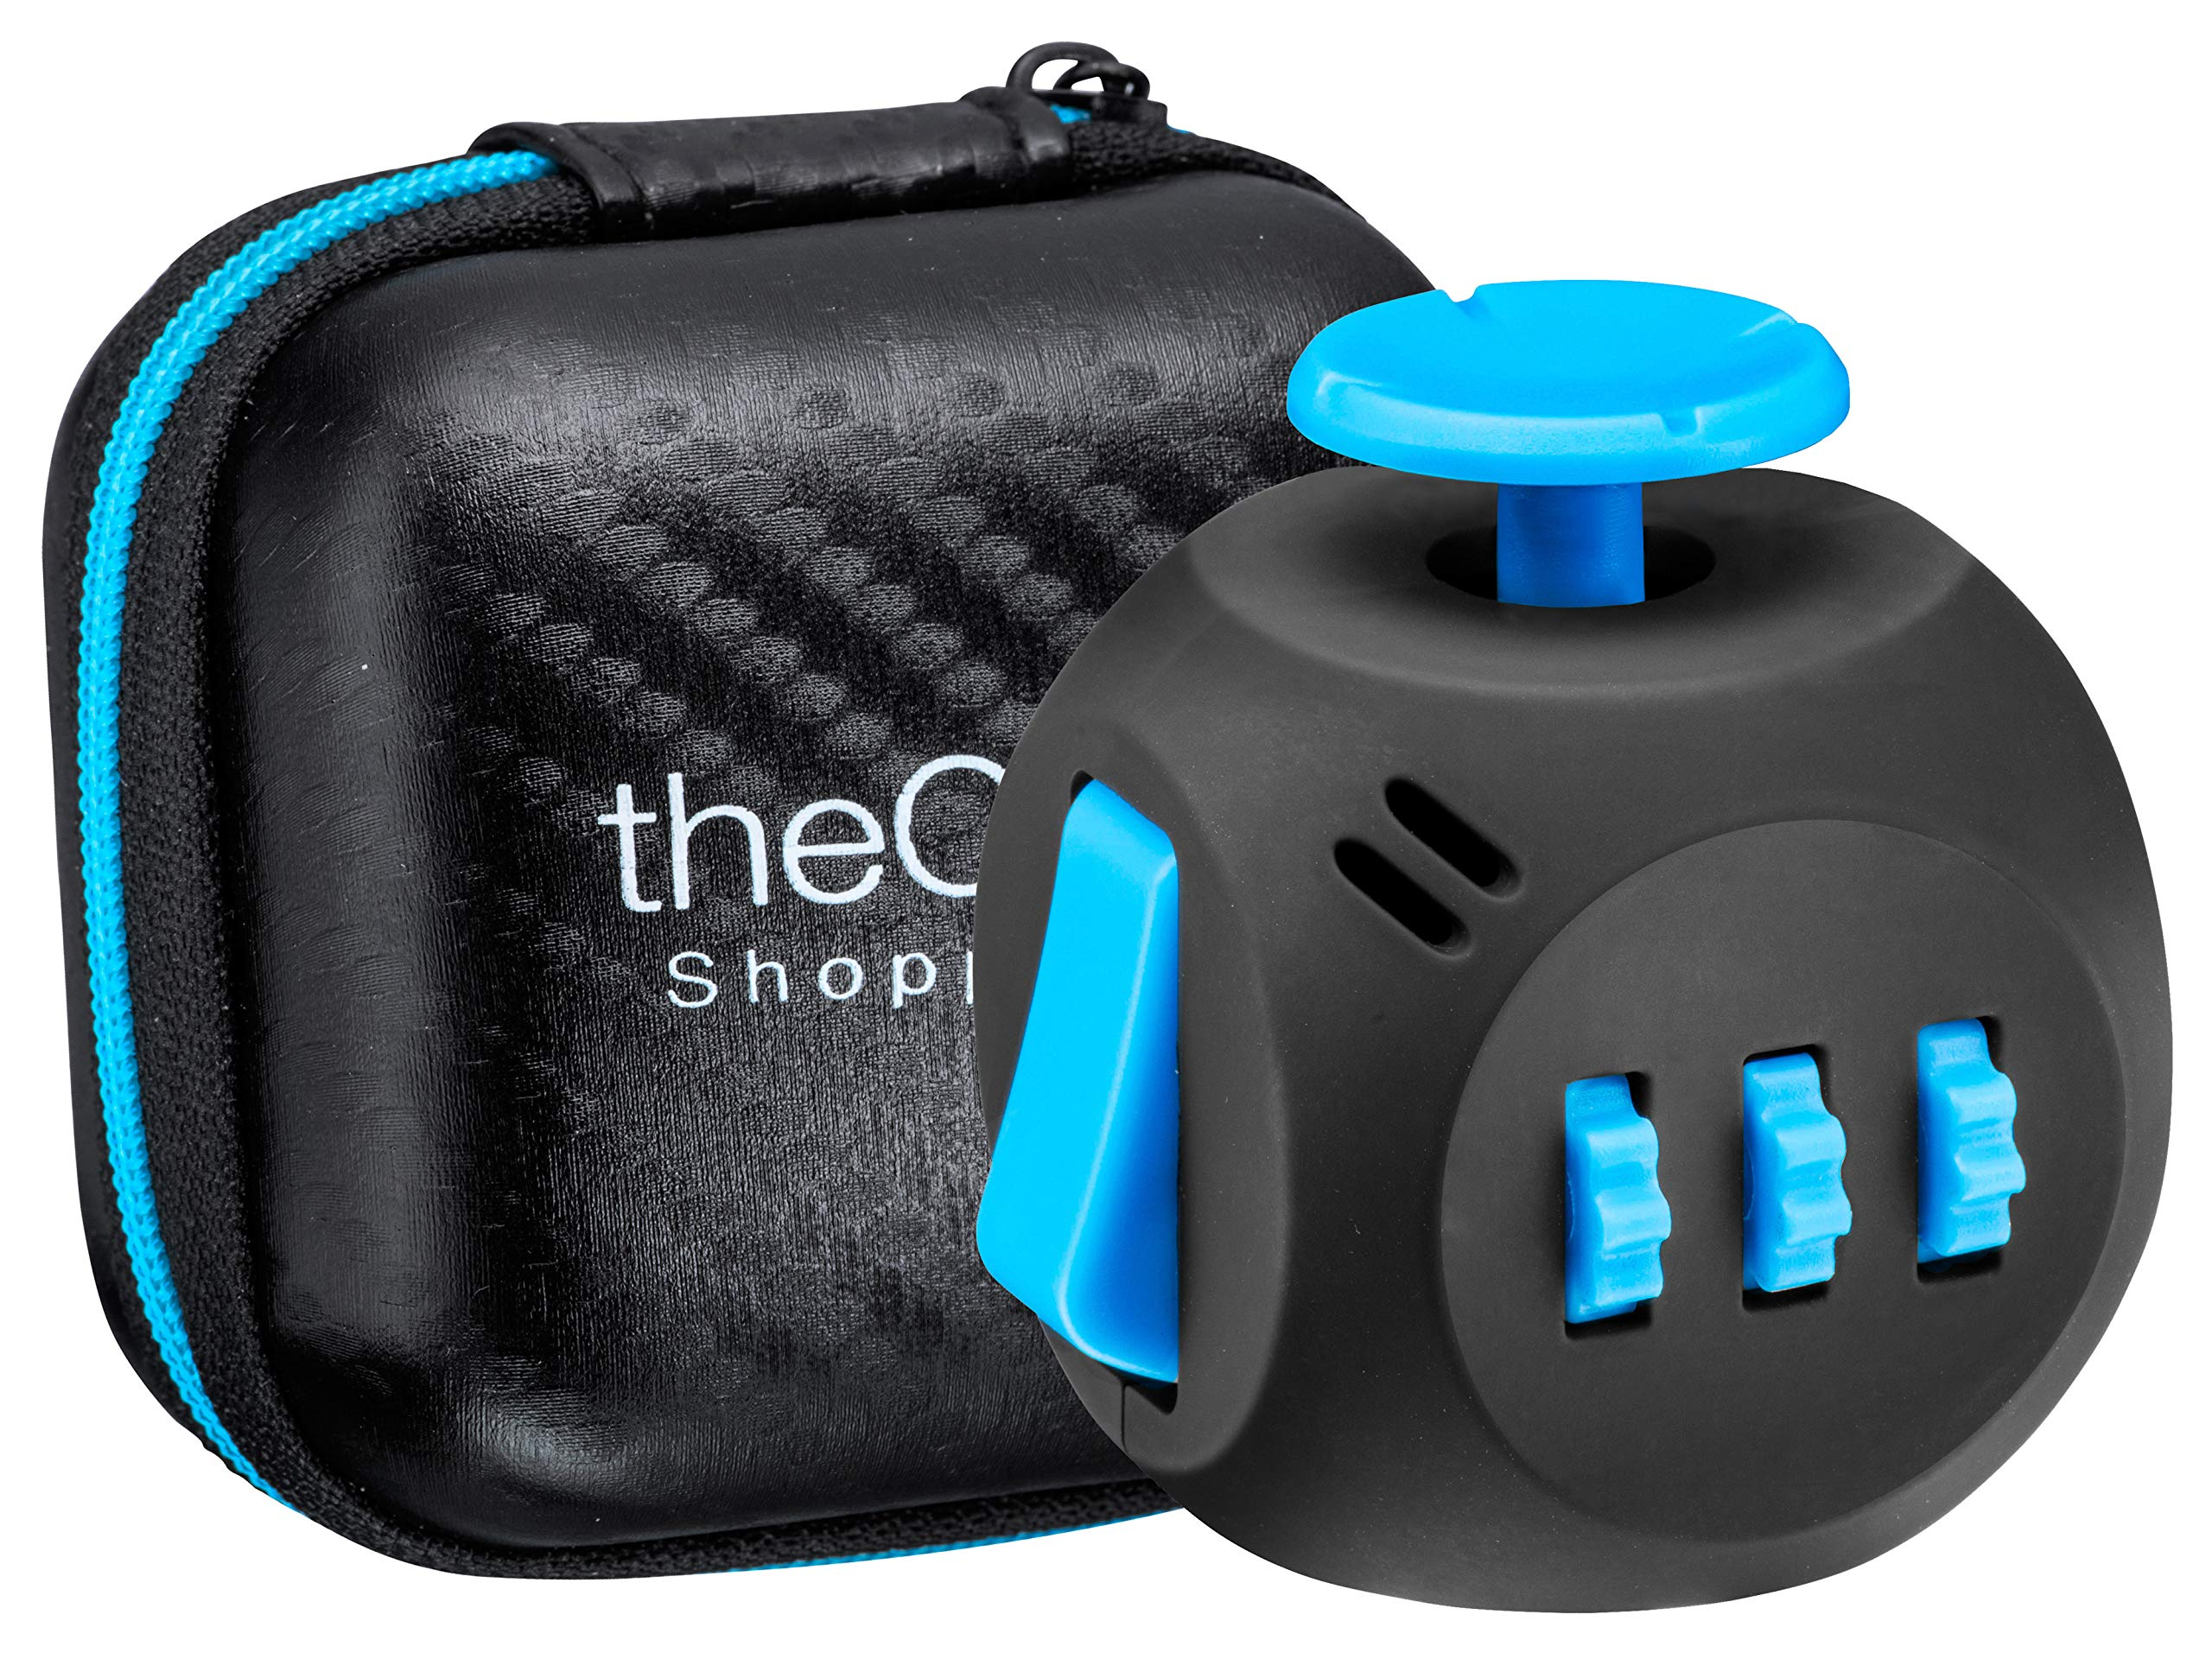 Shopperals Premium Quality Black & Blue Fidget Cube with Exclusive Matching Gift Case, Stress Relief Toy by Shopperals